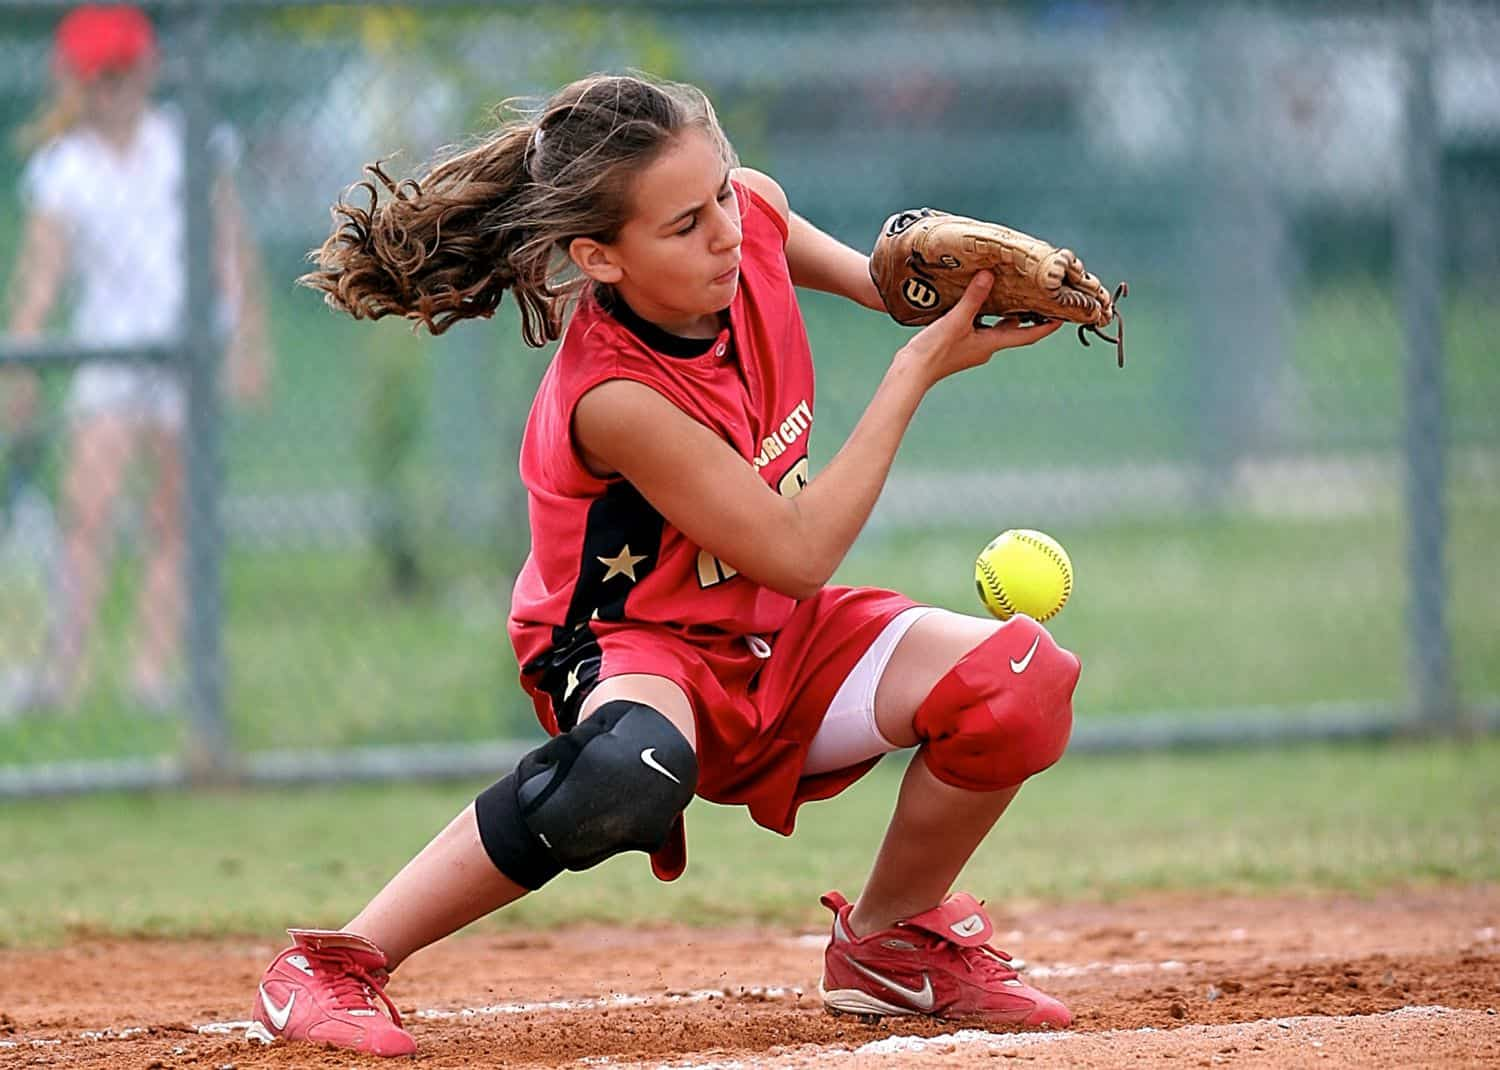 A young girl wearing a red jersey catching a softball